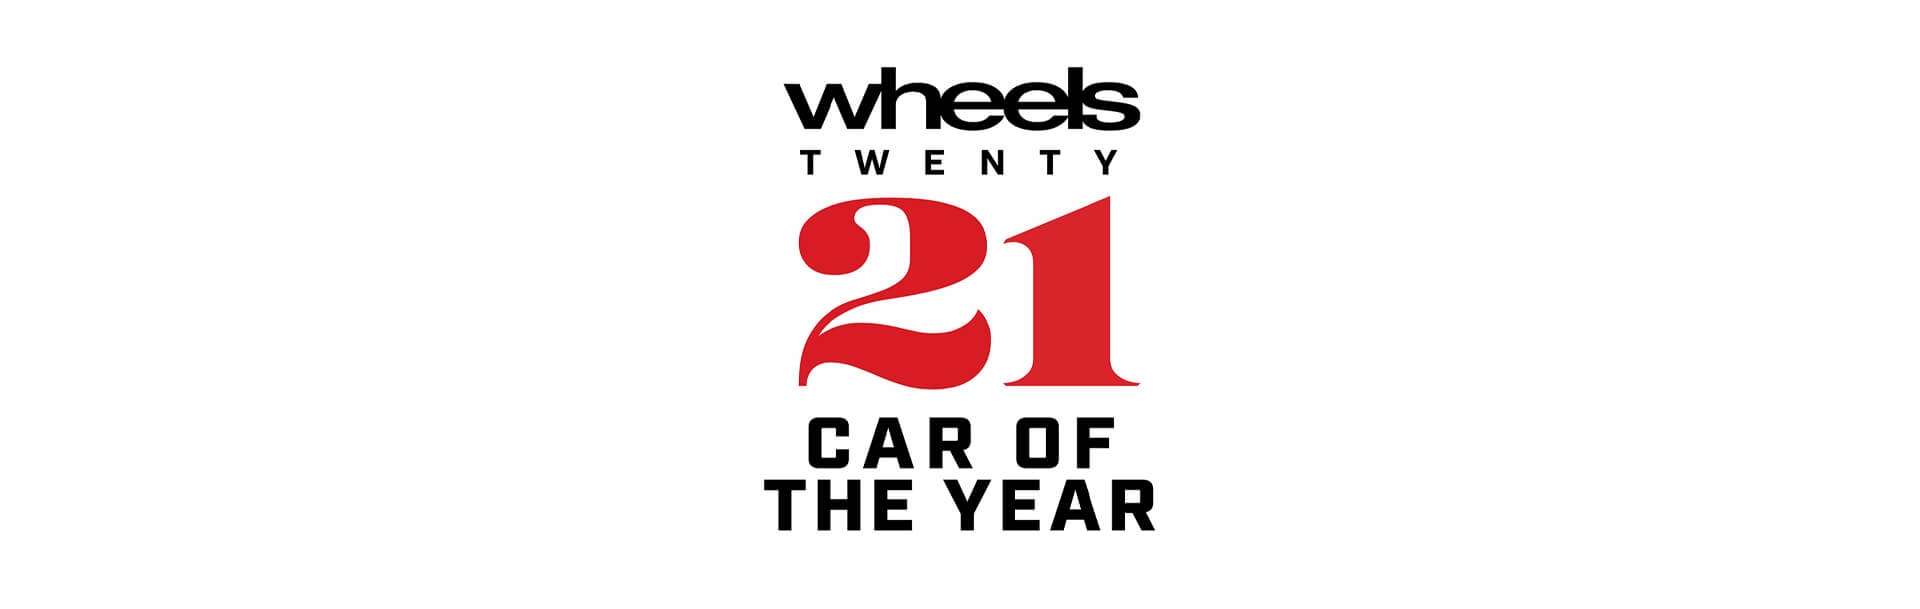 Wheels 2021 Car of the Year